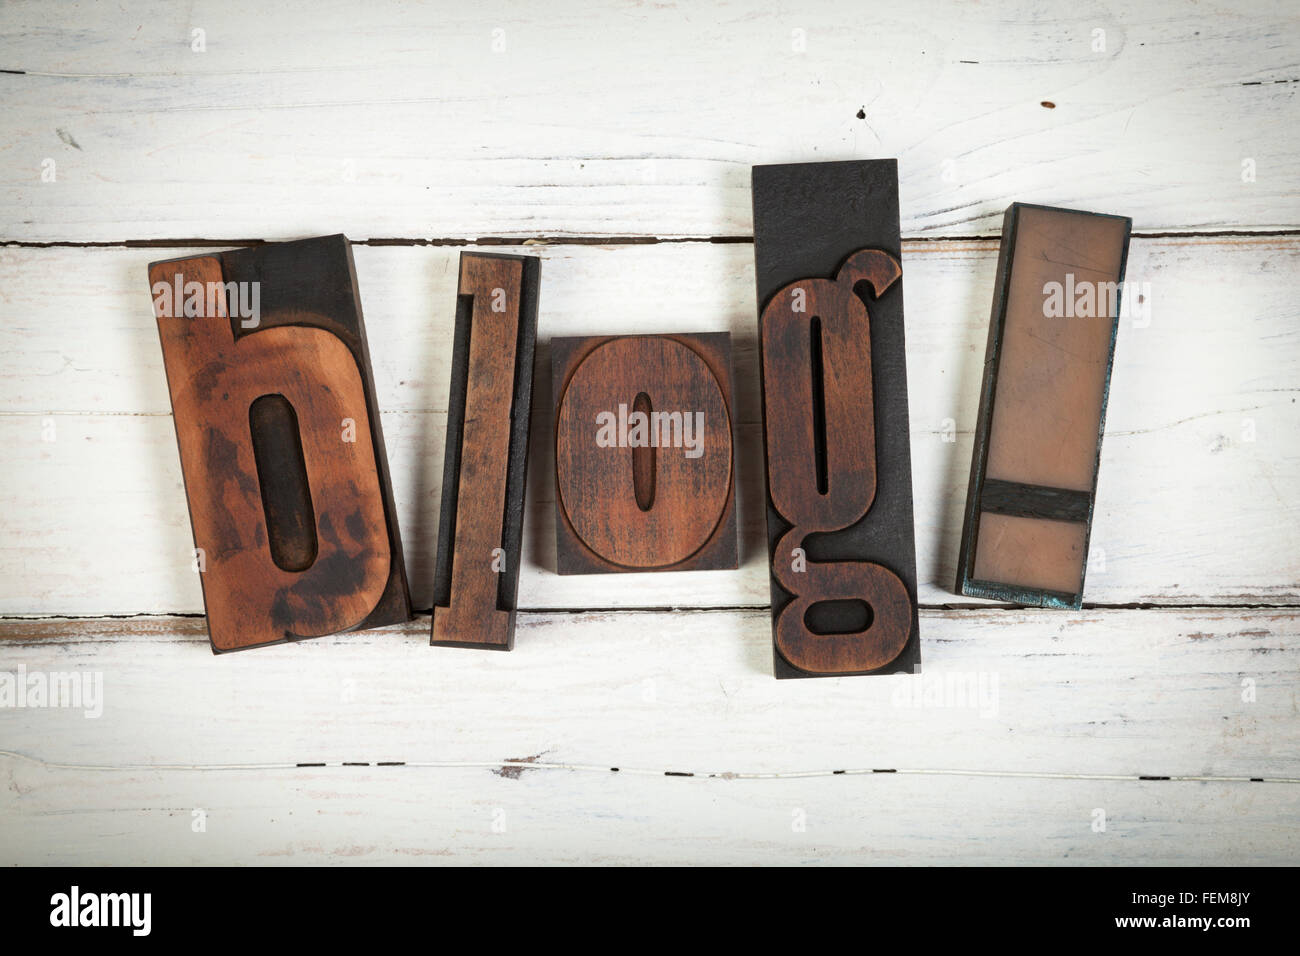 blog, word written with vintage letterpress printing blocks on white painted wooden background - Stock Image